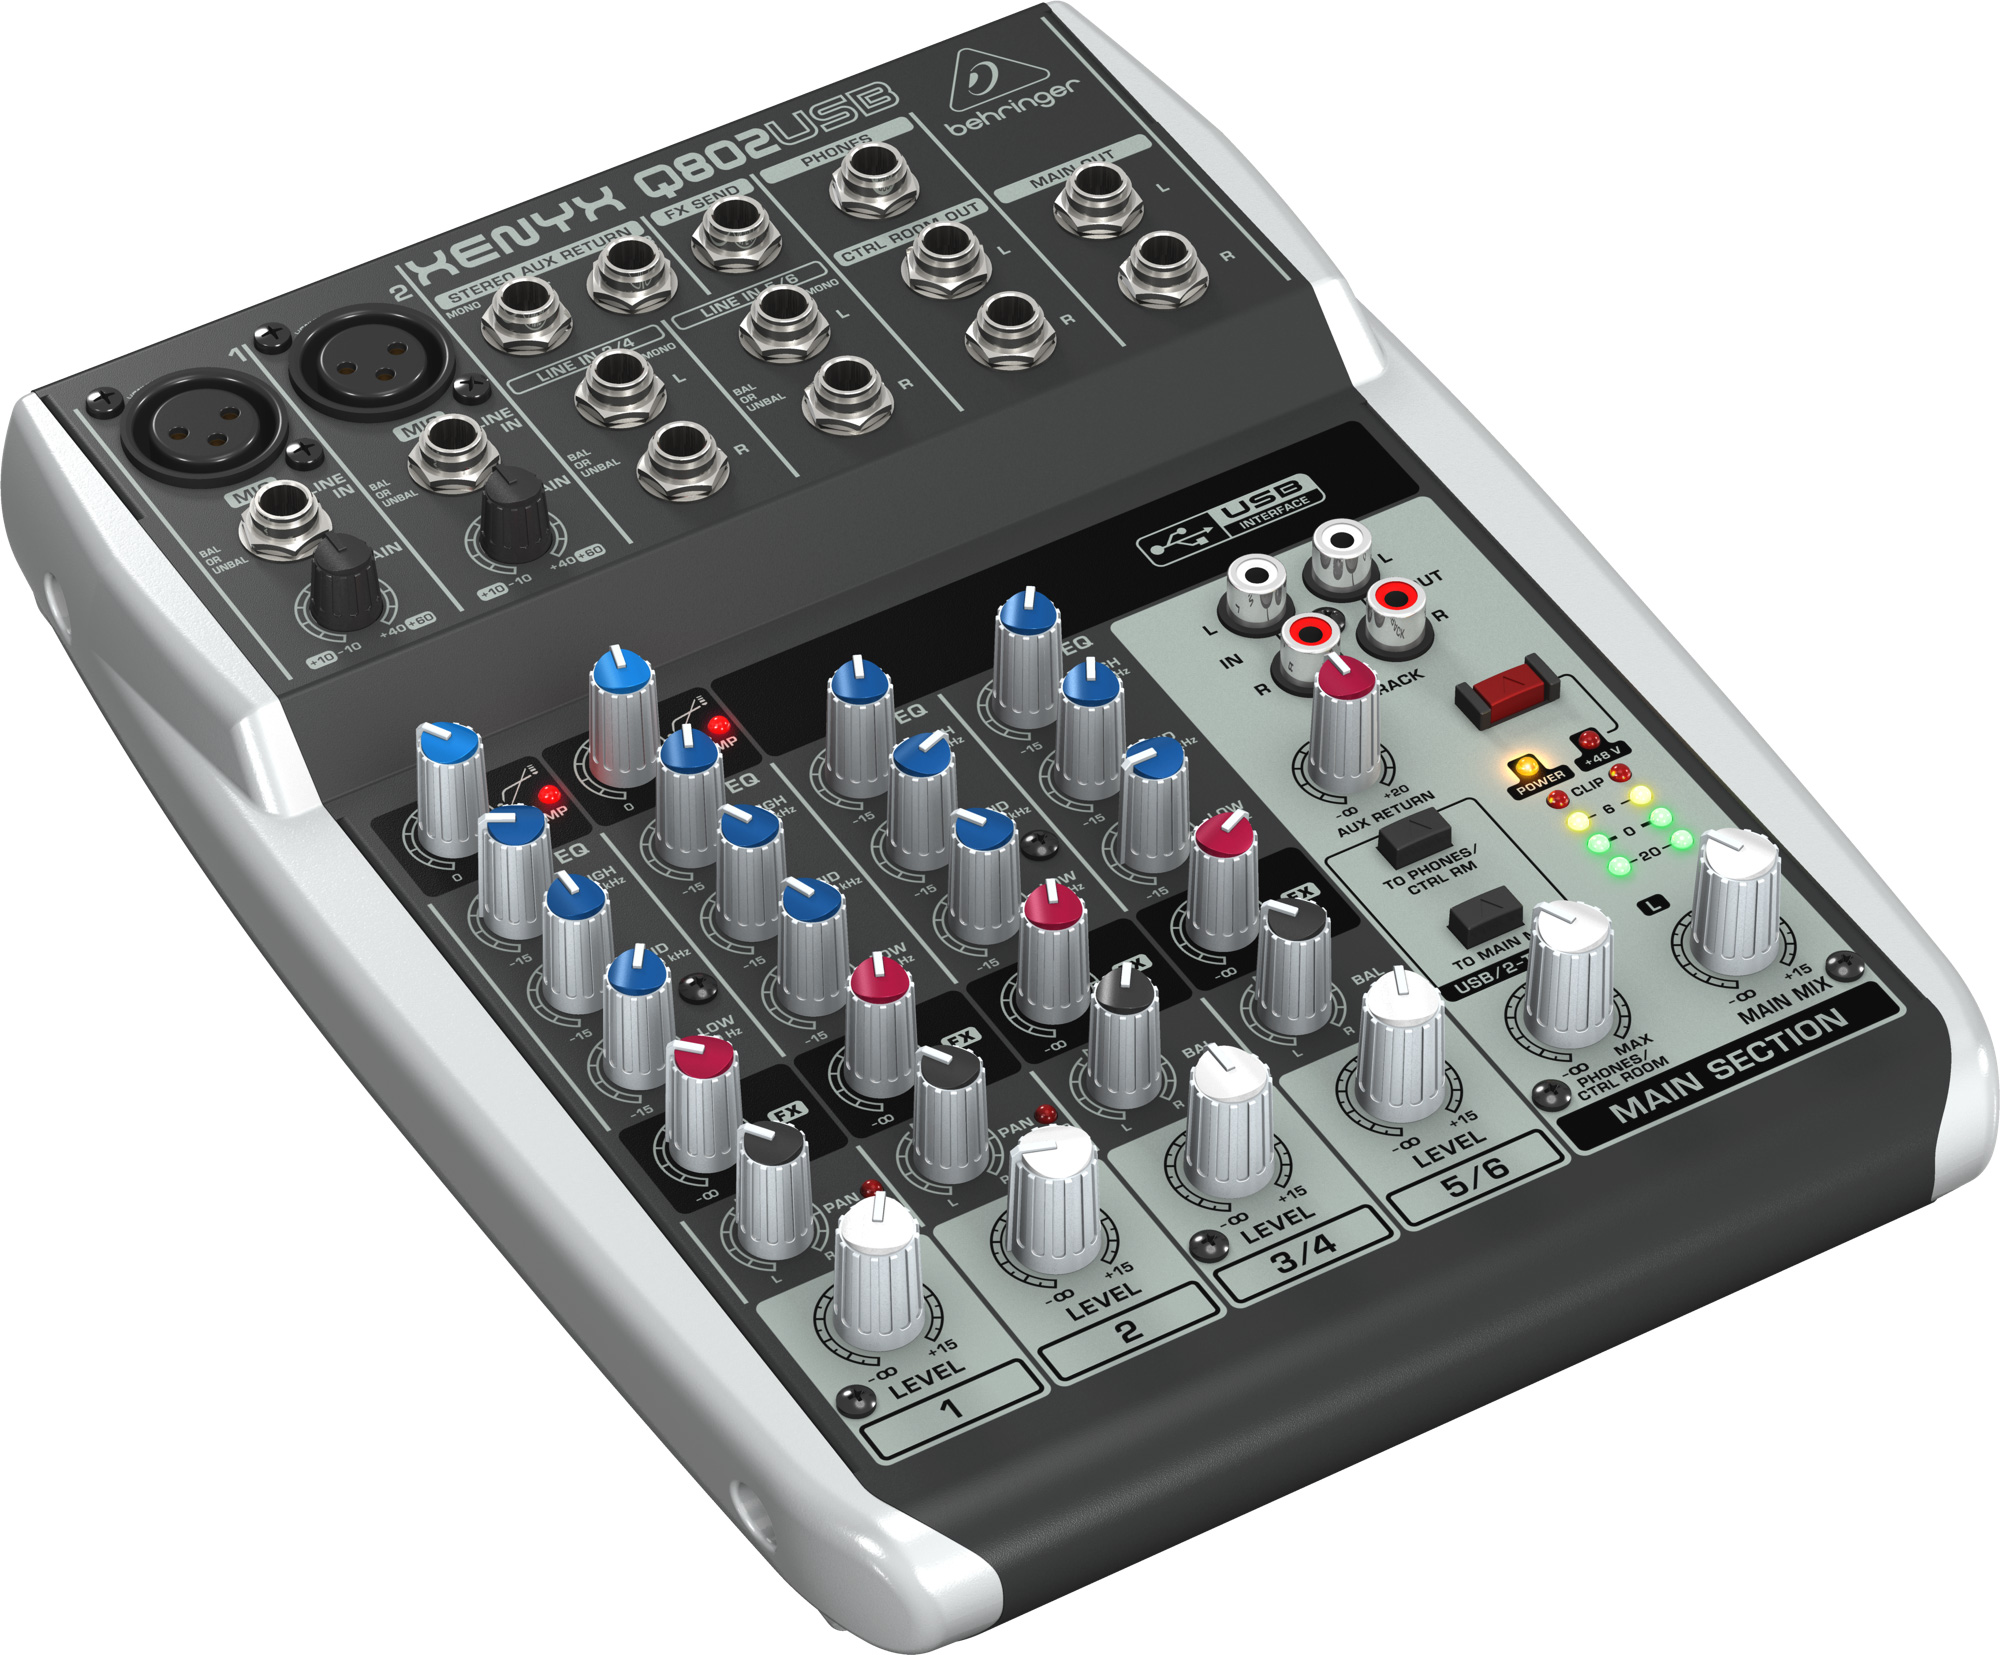 behringer q802usb premium 8 input 2 bus analog audio mixer. Black Bedroom Furniture Sets. Home Design Ideas